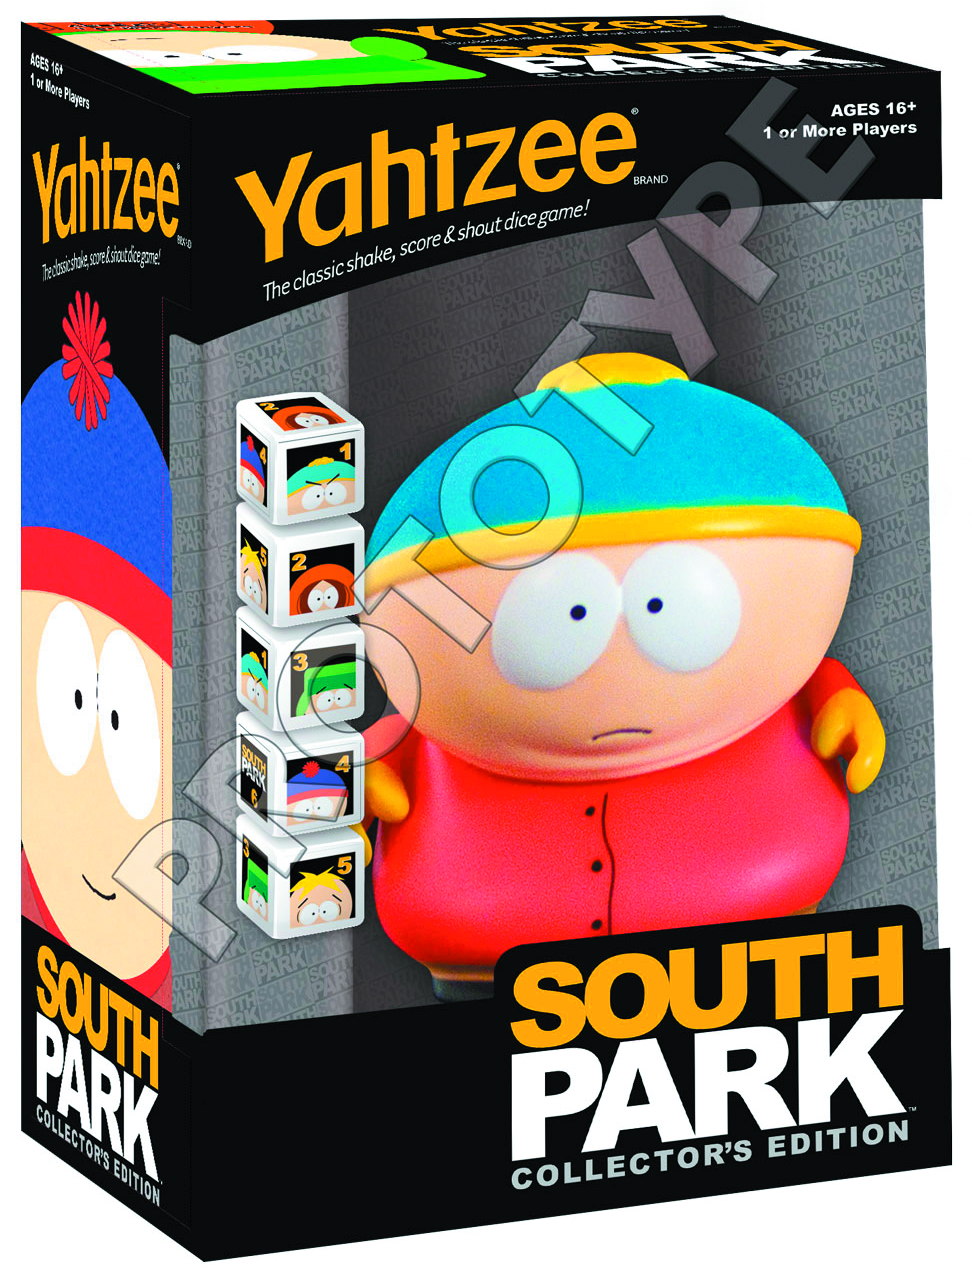 SOUTH PARK COLLECTORS EDITION YAHTZEE